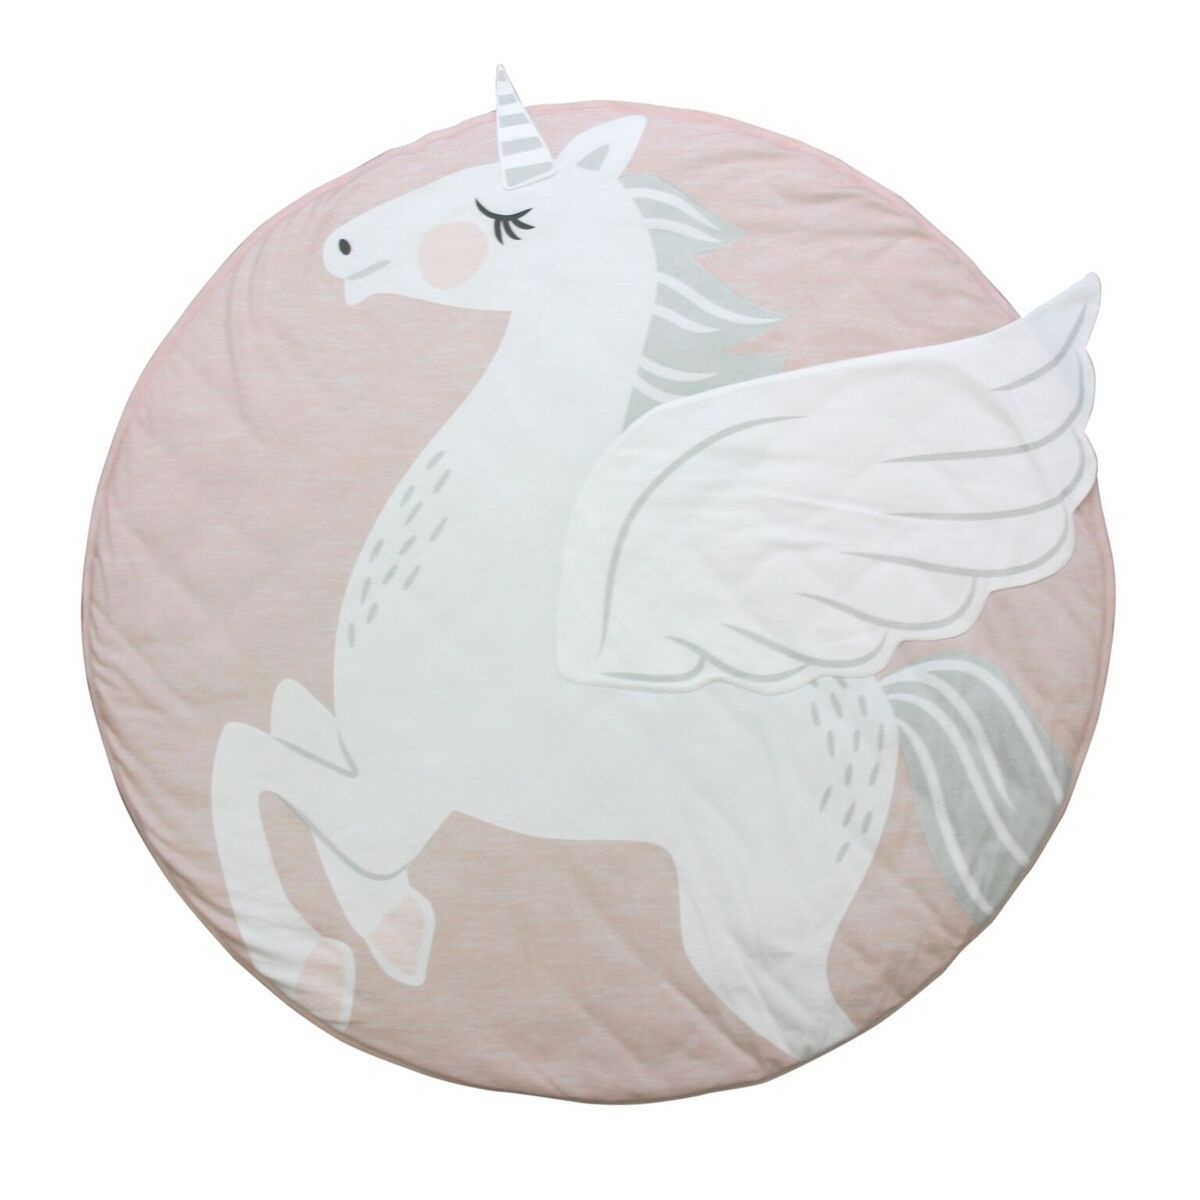 Mister Fly Deluxe Play Mat - Unicorn